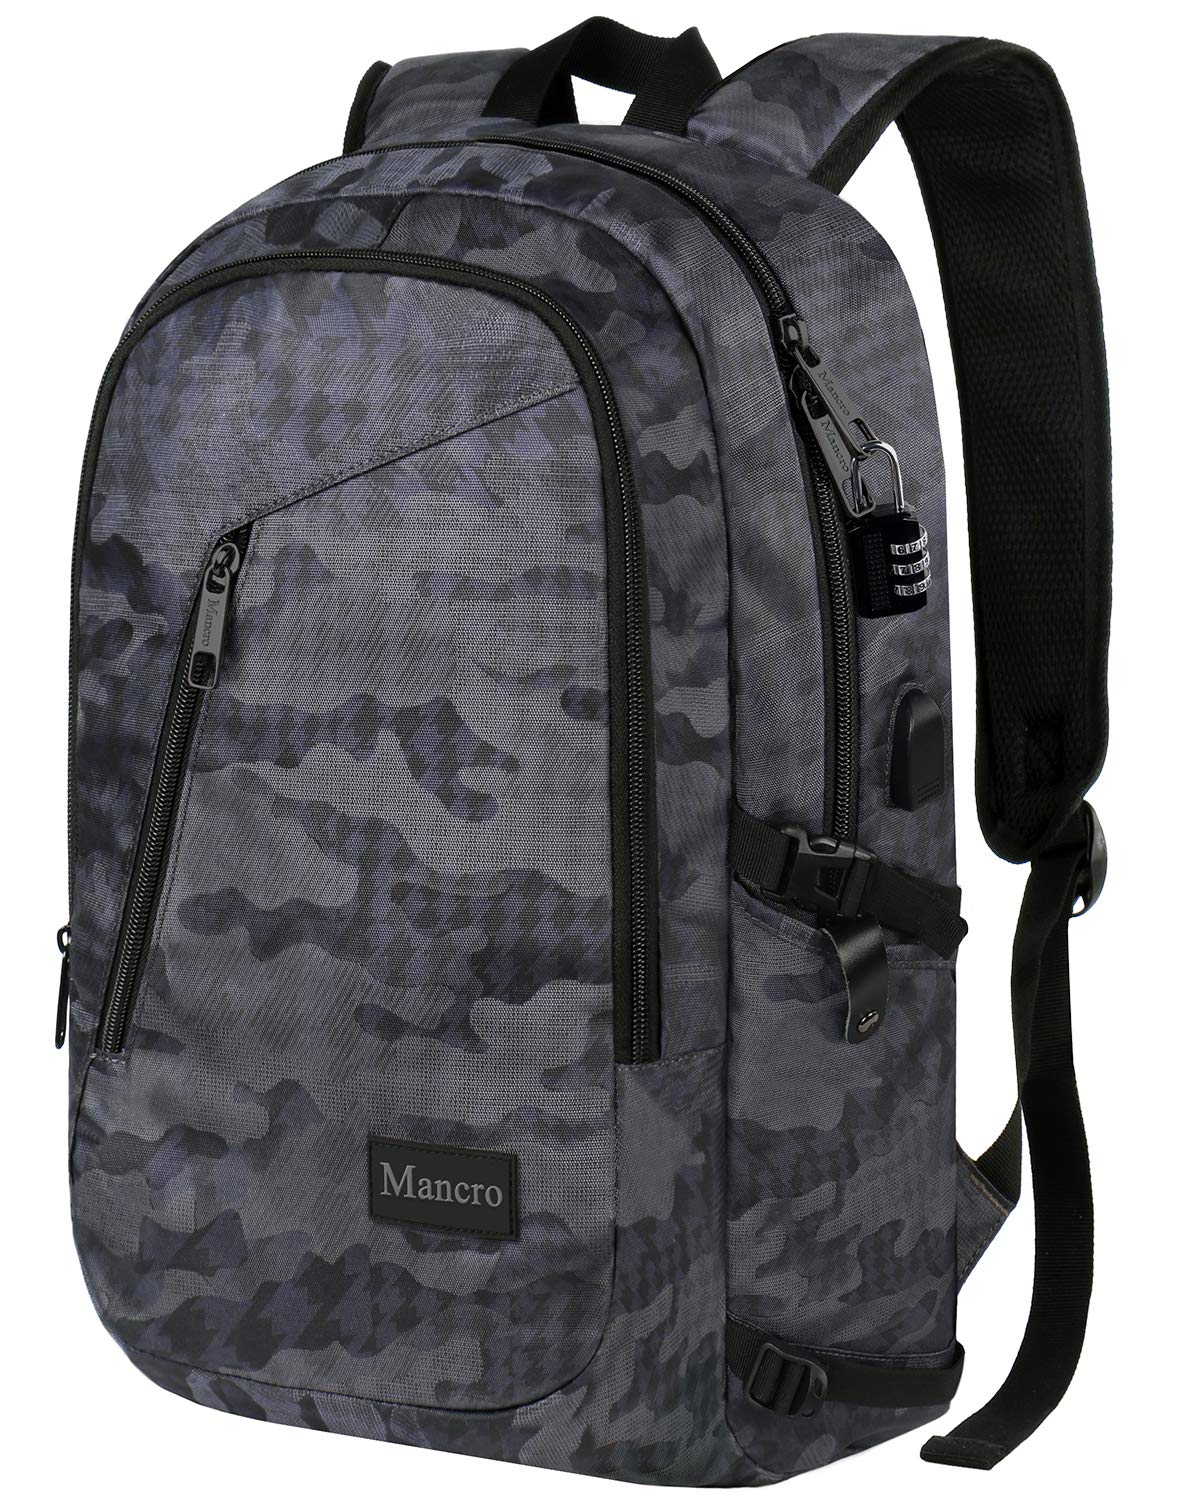 Camo Backpack, Camouflage Travel Laptop Backpack for Travel Accessories, Lightweight Anti-Theft Durable School Bag with Charging Port, Outdoor Daypack for Men Women Boys Girls, Fit 15.6 Inch Notebook by Mancro